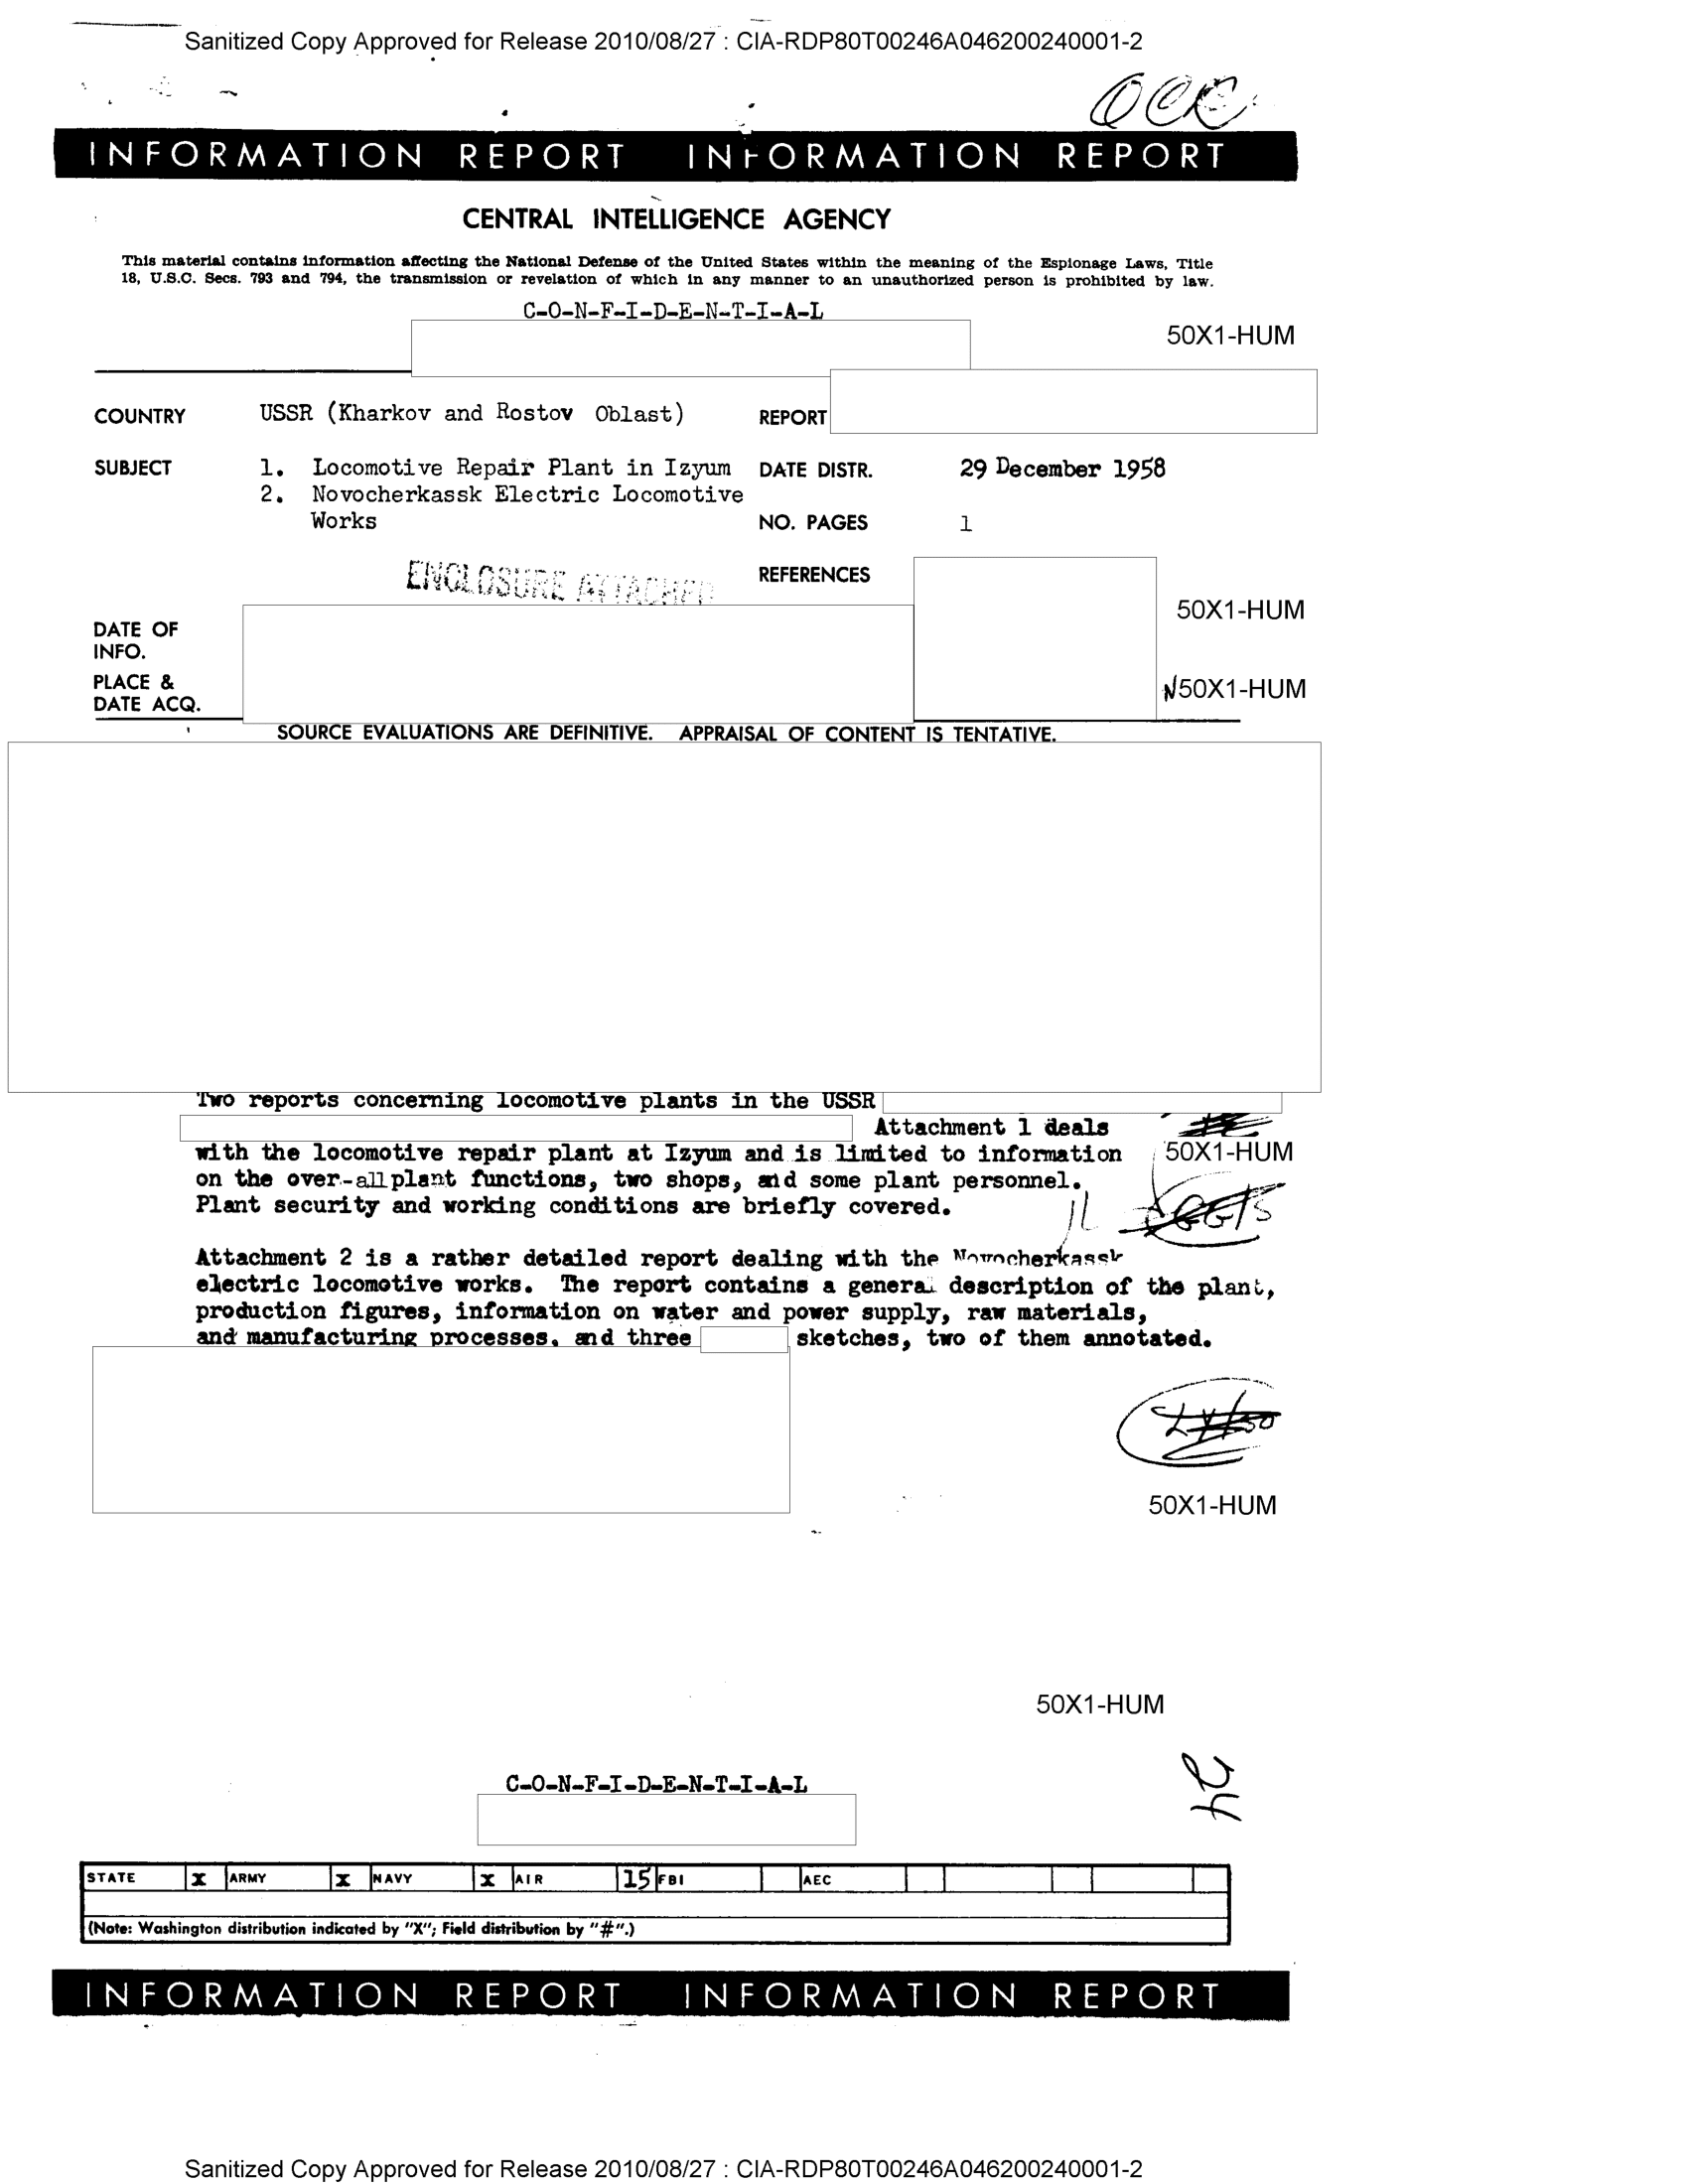 CIA-RDP80T00246A046200240001-2-01.png